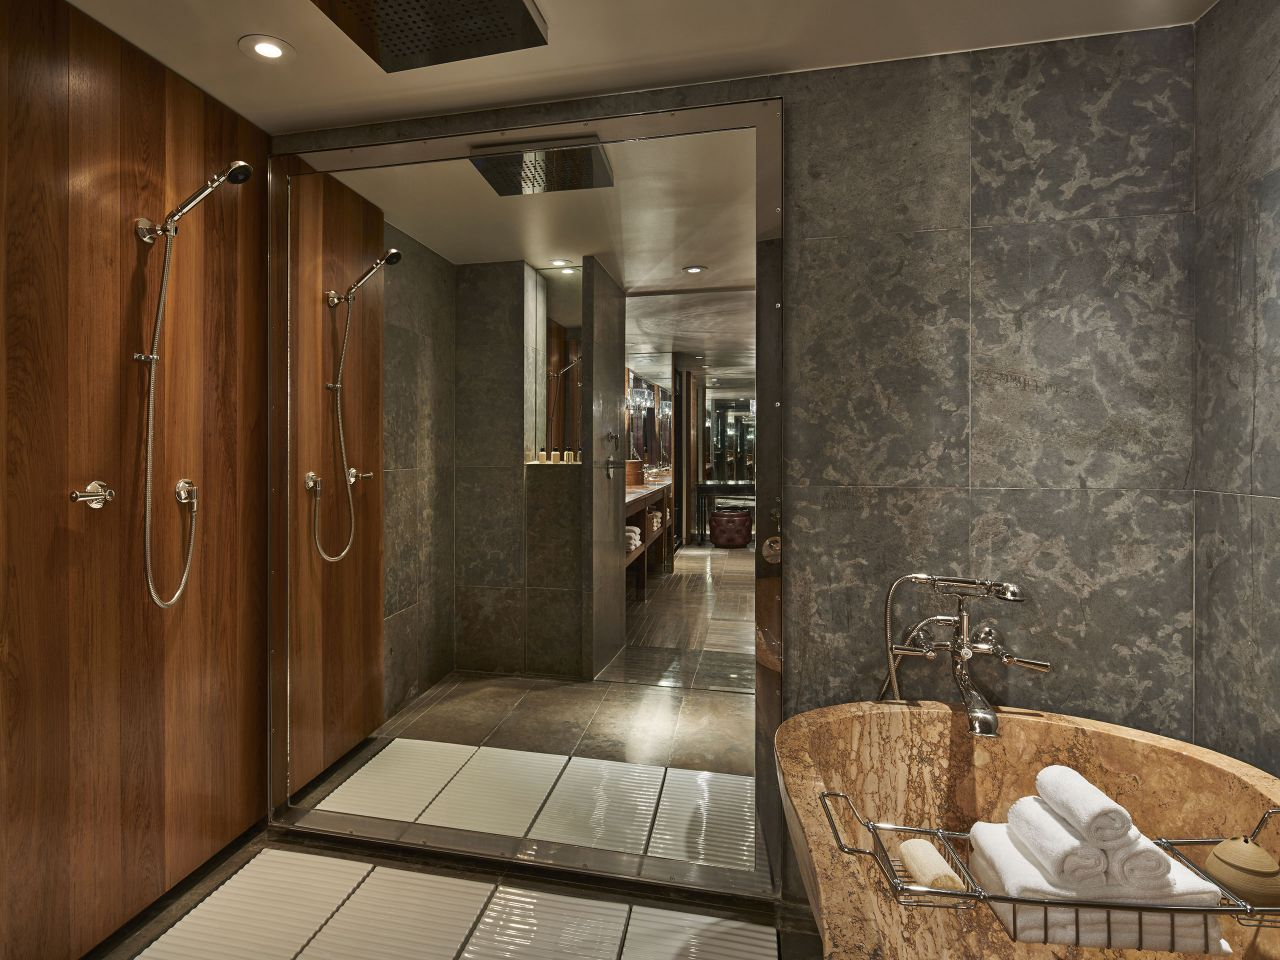 Park Hyatt Washington D.C. Presidential Suite Shower Bathtub